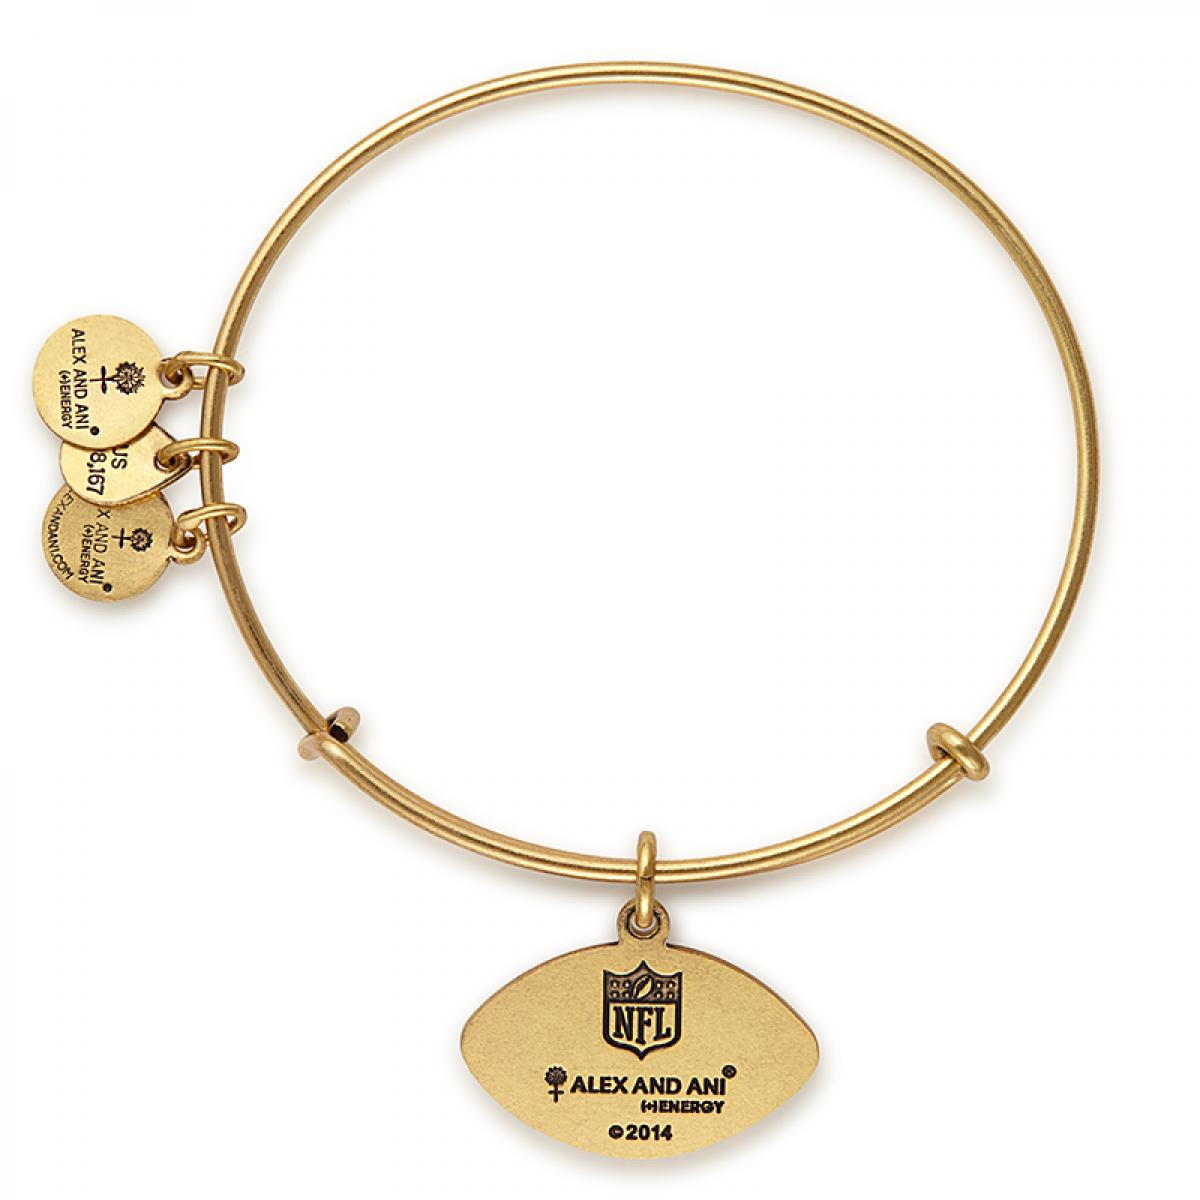 d9ee125a872 Lyst - ALEX AND ANI Chicago Bears Football Charm Bangle in Metallic